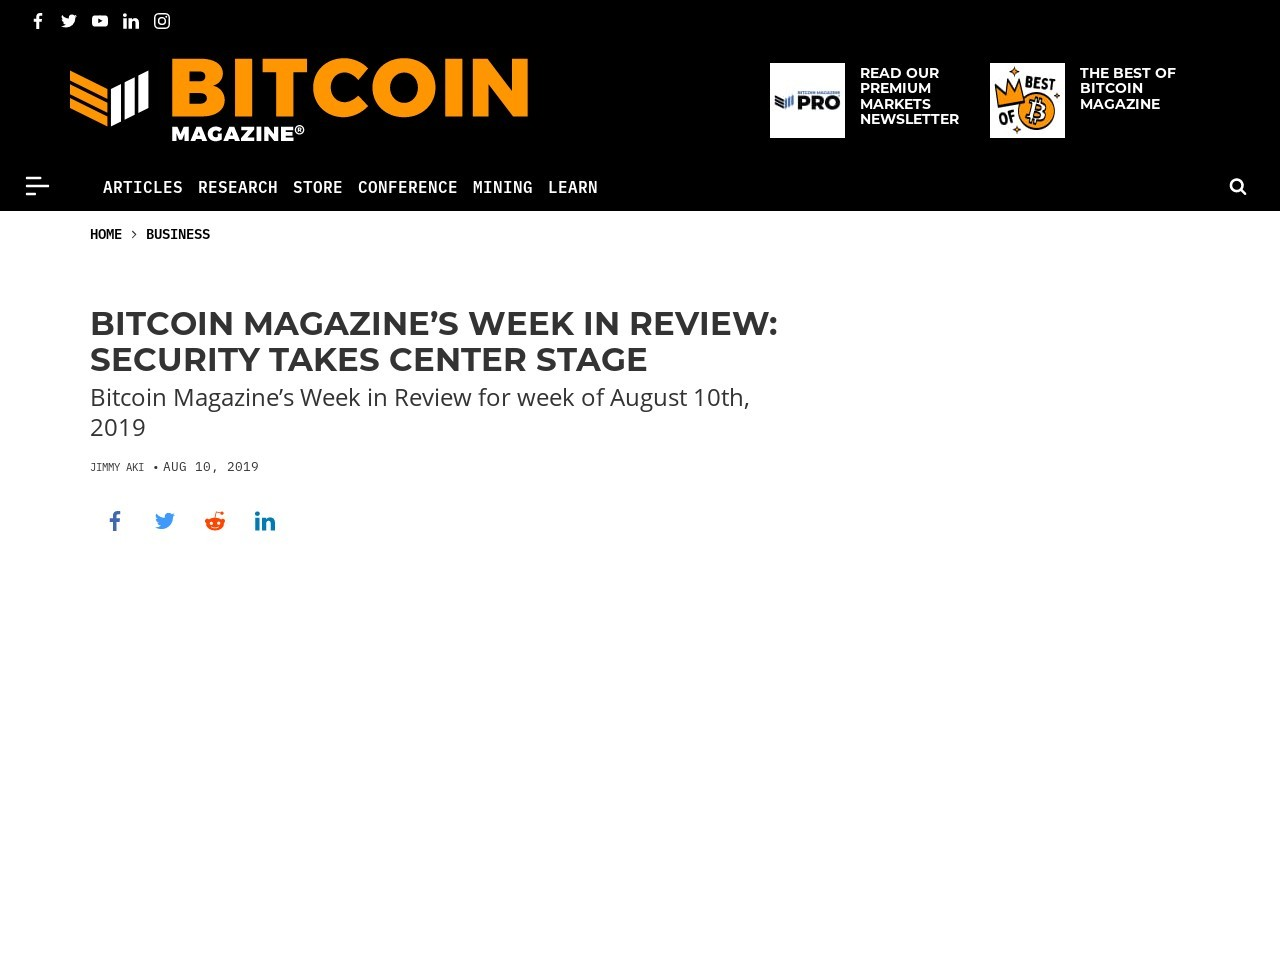 Bitcoin Magazine's Week in Review: Security Takes Center Stage